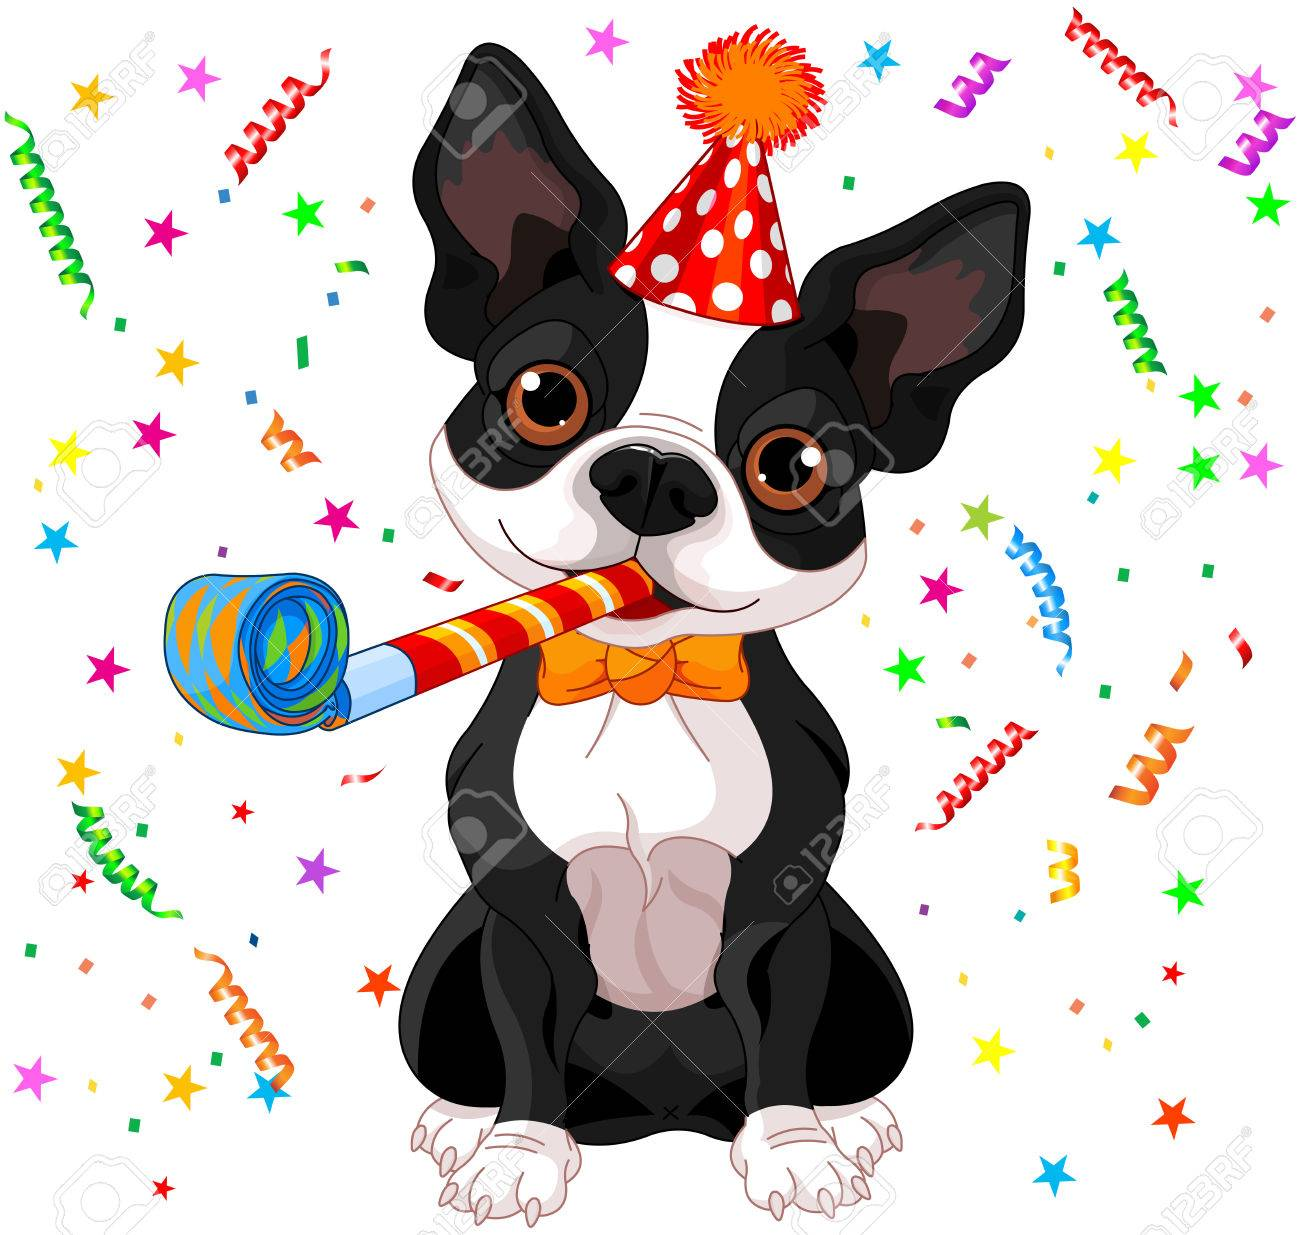 Lui donner goût au travail 35588778-illustration-of-cute-boston-terrier-celebrating